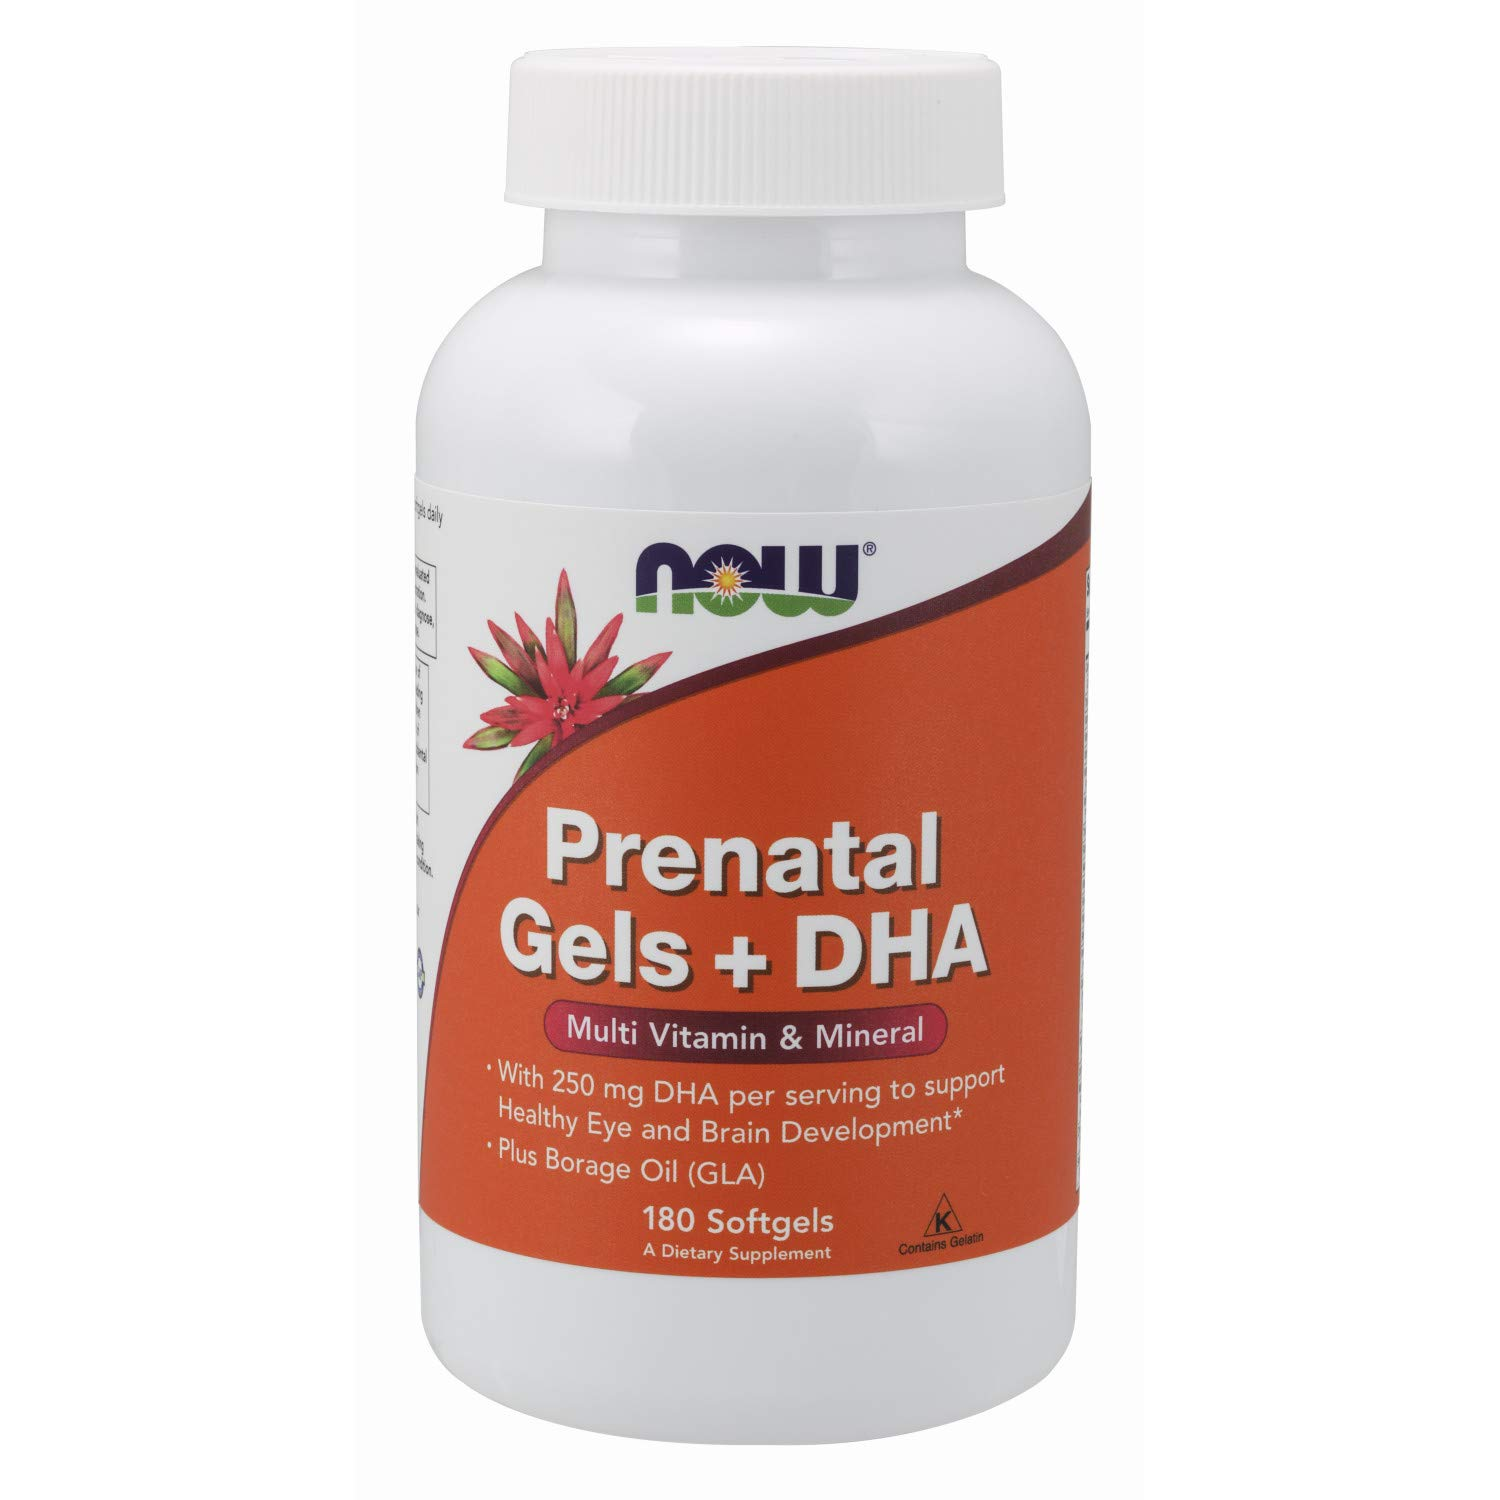 NOW Supplements, Prenatal Gels + DHA with 250 mg DHA per serving, plus Borage Oil (GLA), 180 Softgels